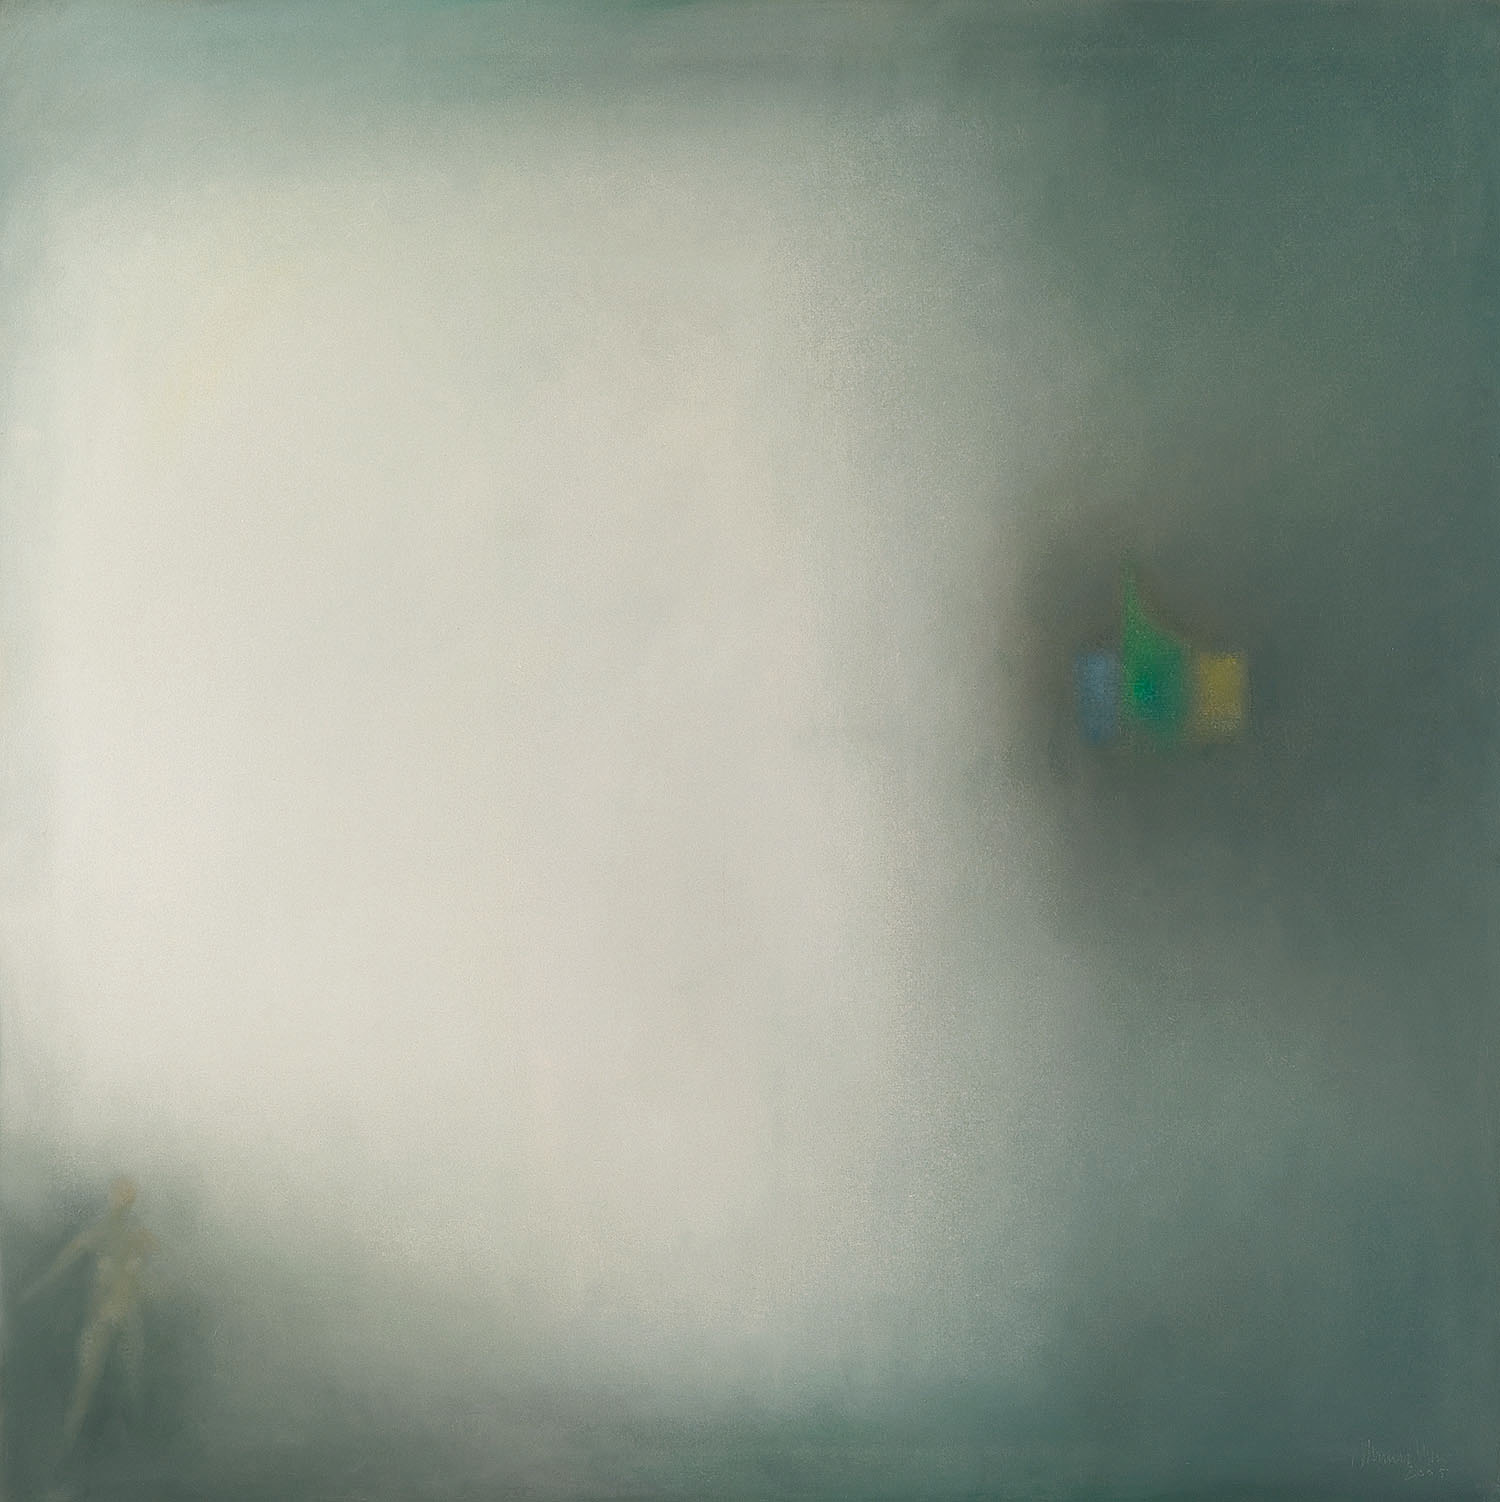 Atmosphere, 2004, oil on canvas, cm 130 x 130